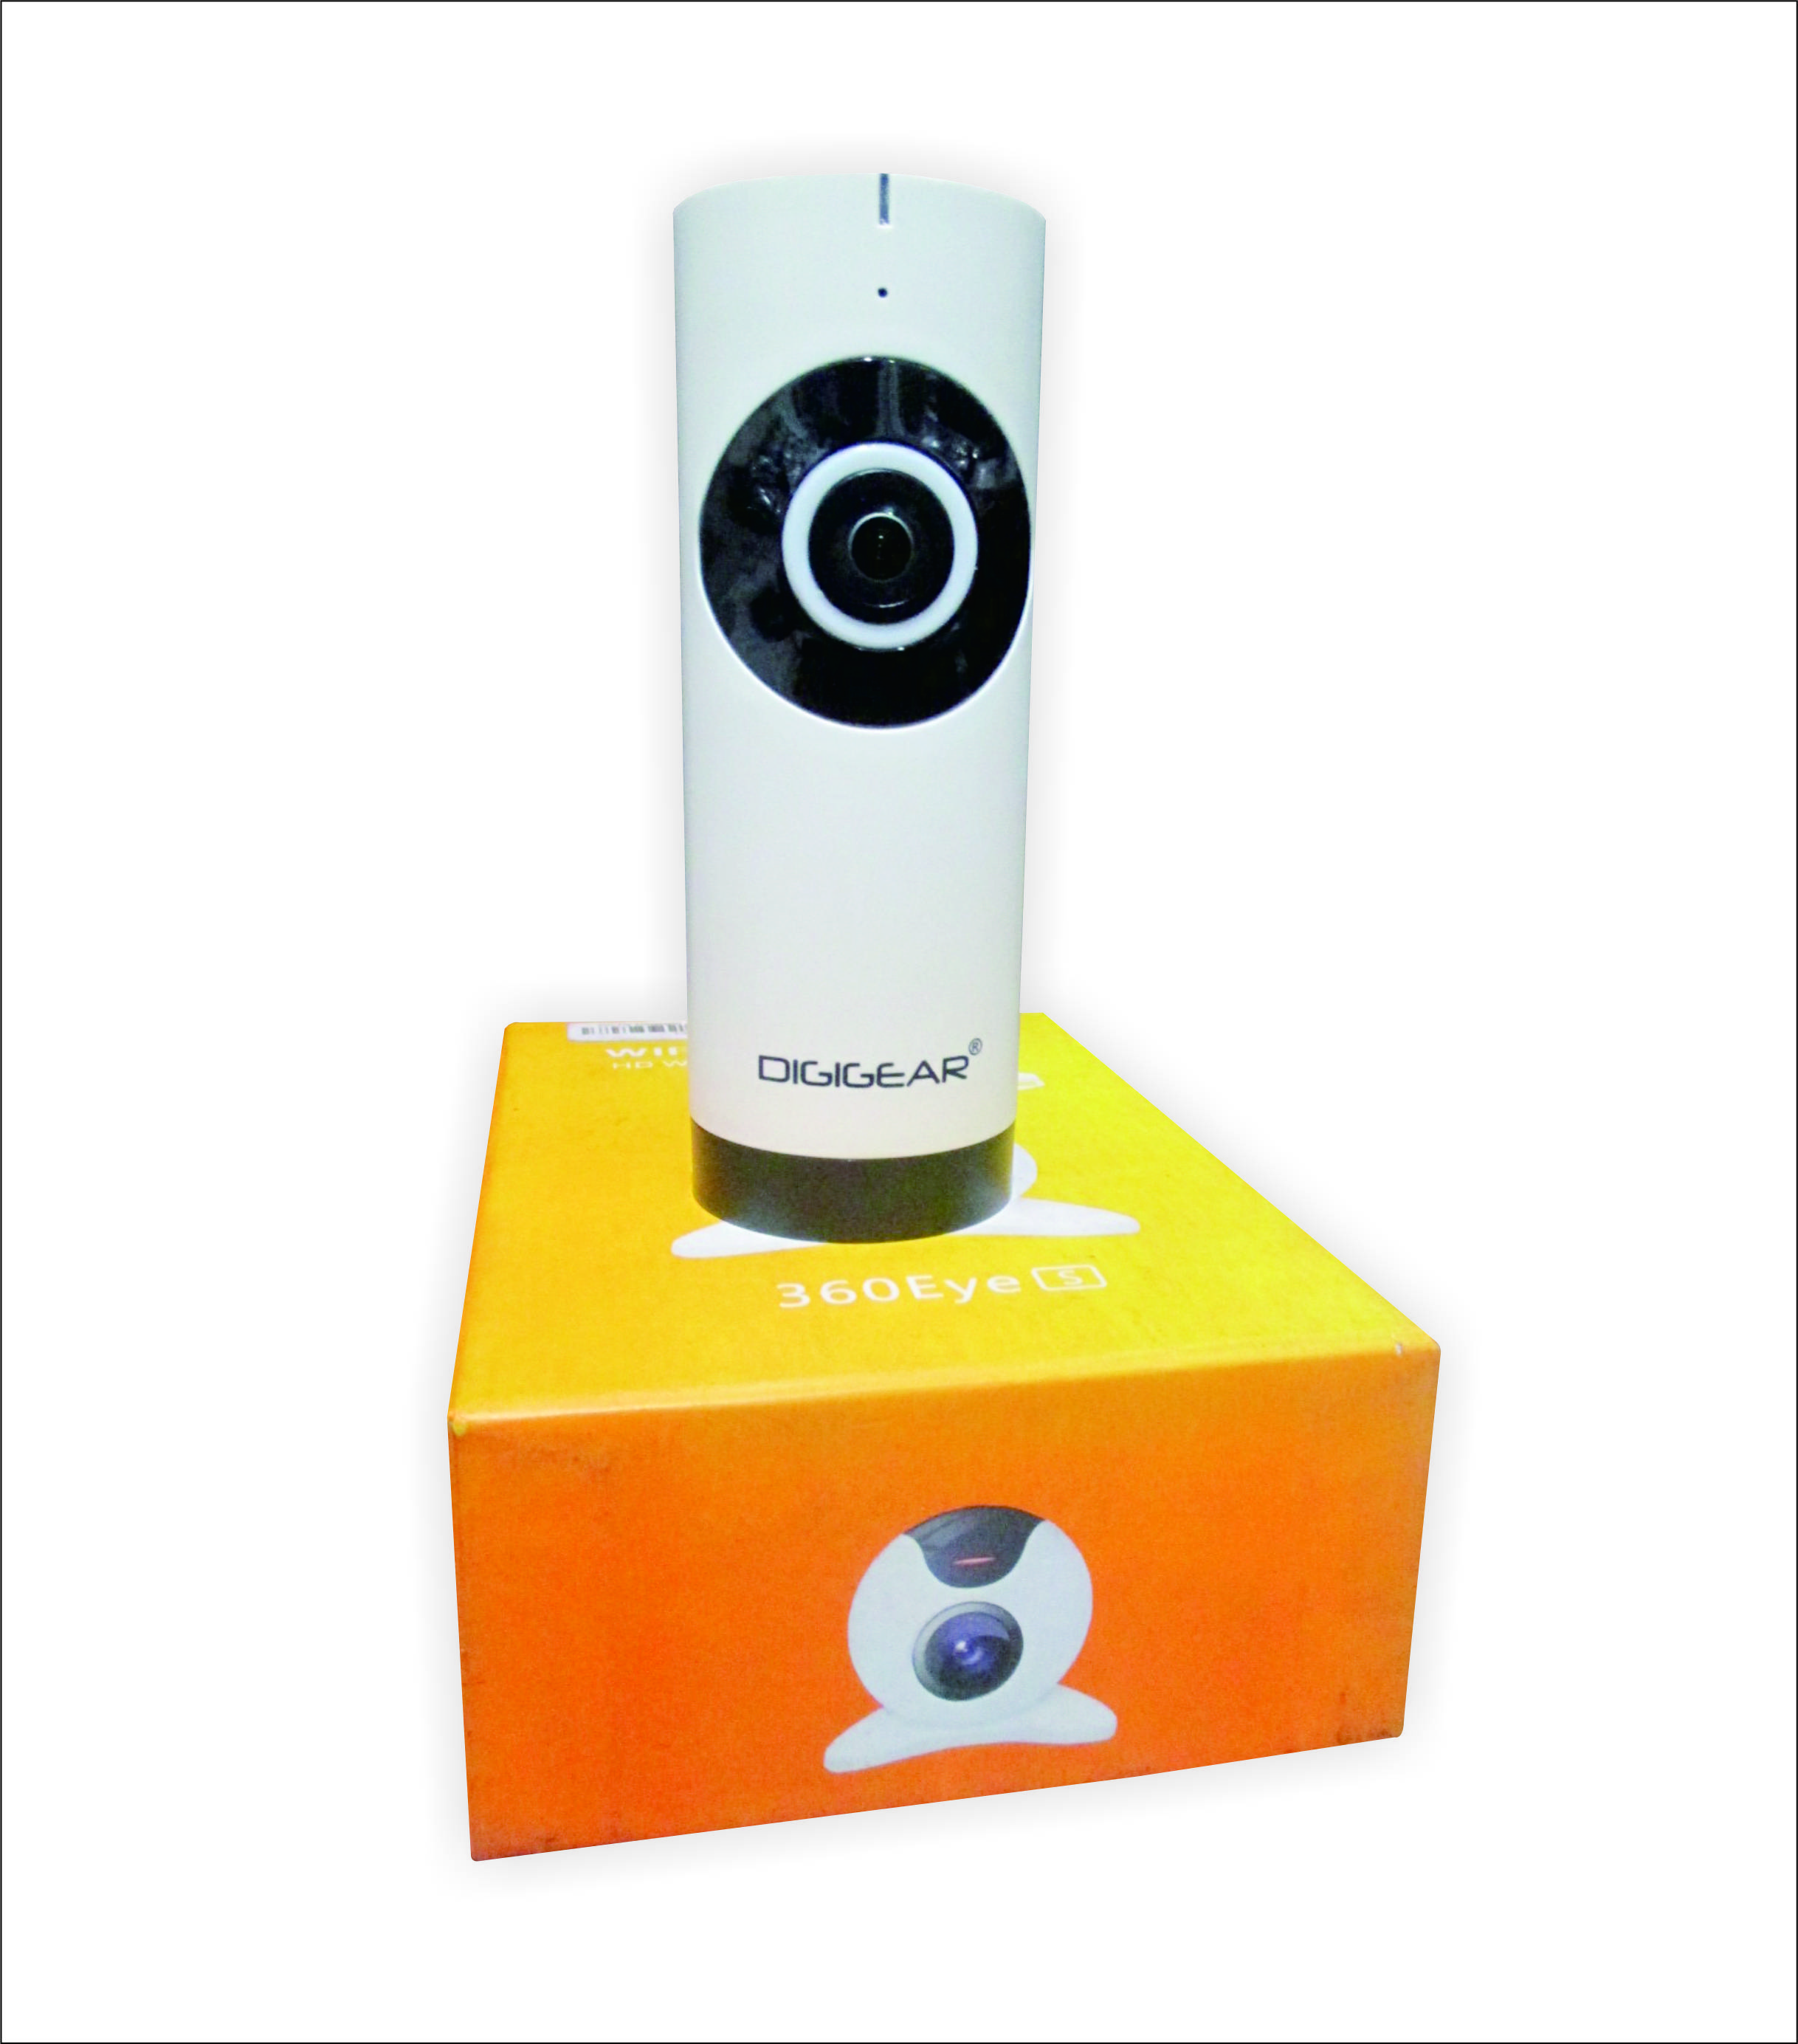 CCTV Digigear Clever Dog Wifi